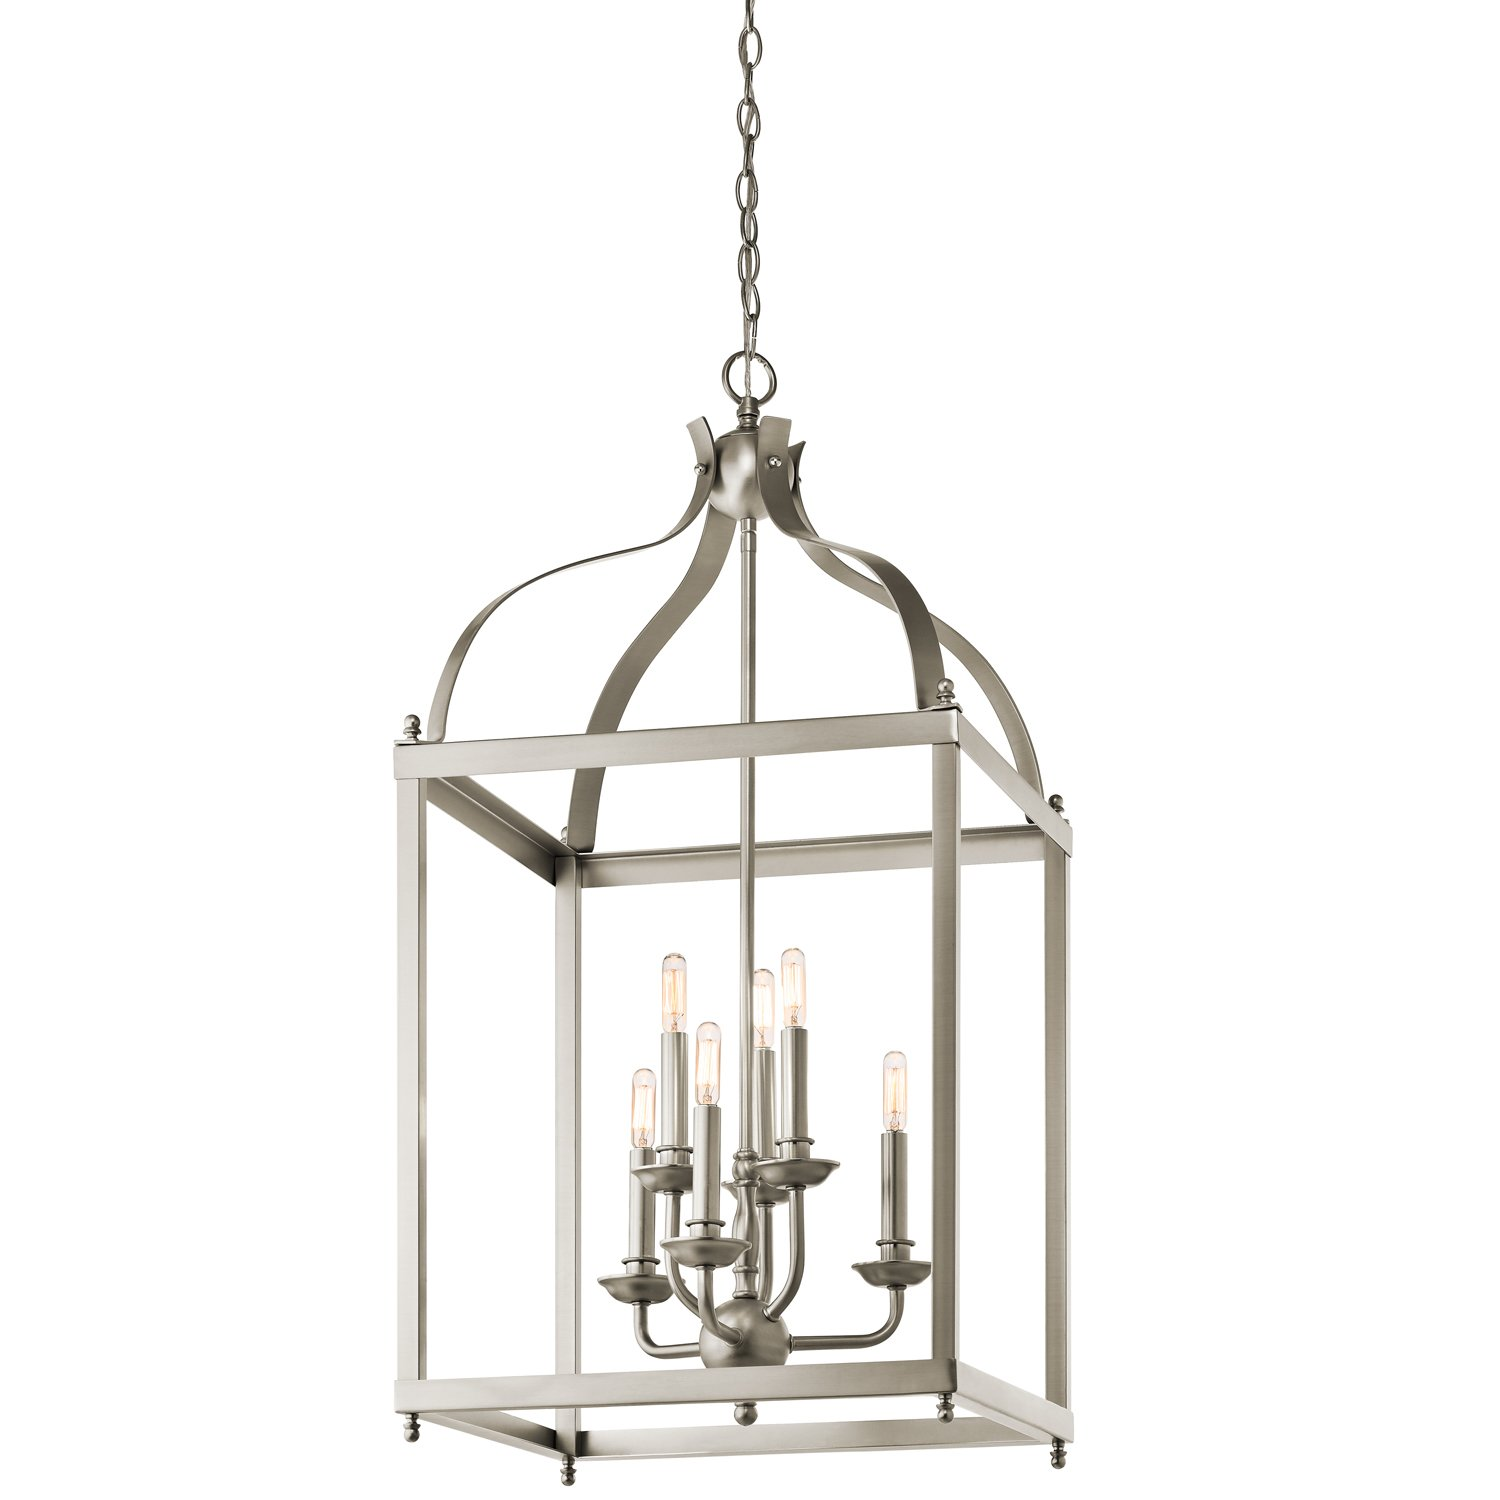 Kichler 42568ni Larkin Foyer Chandelier 6 Light Brushed Nickel Ceiling Pendant Fixtures Com